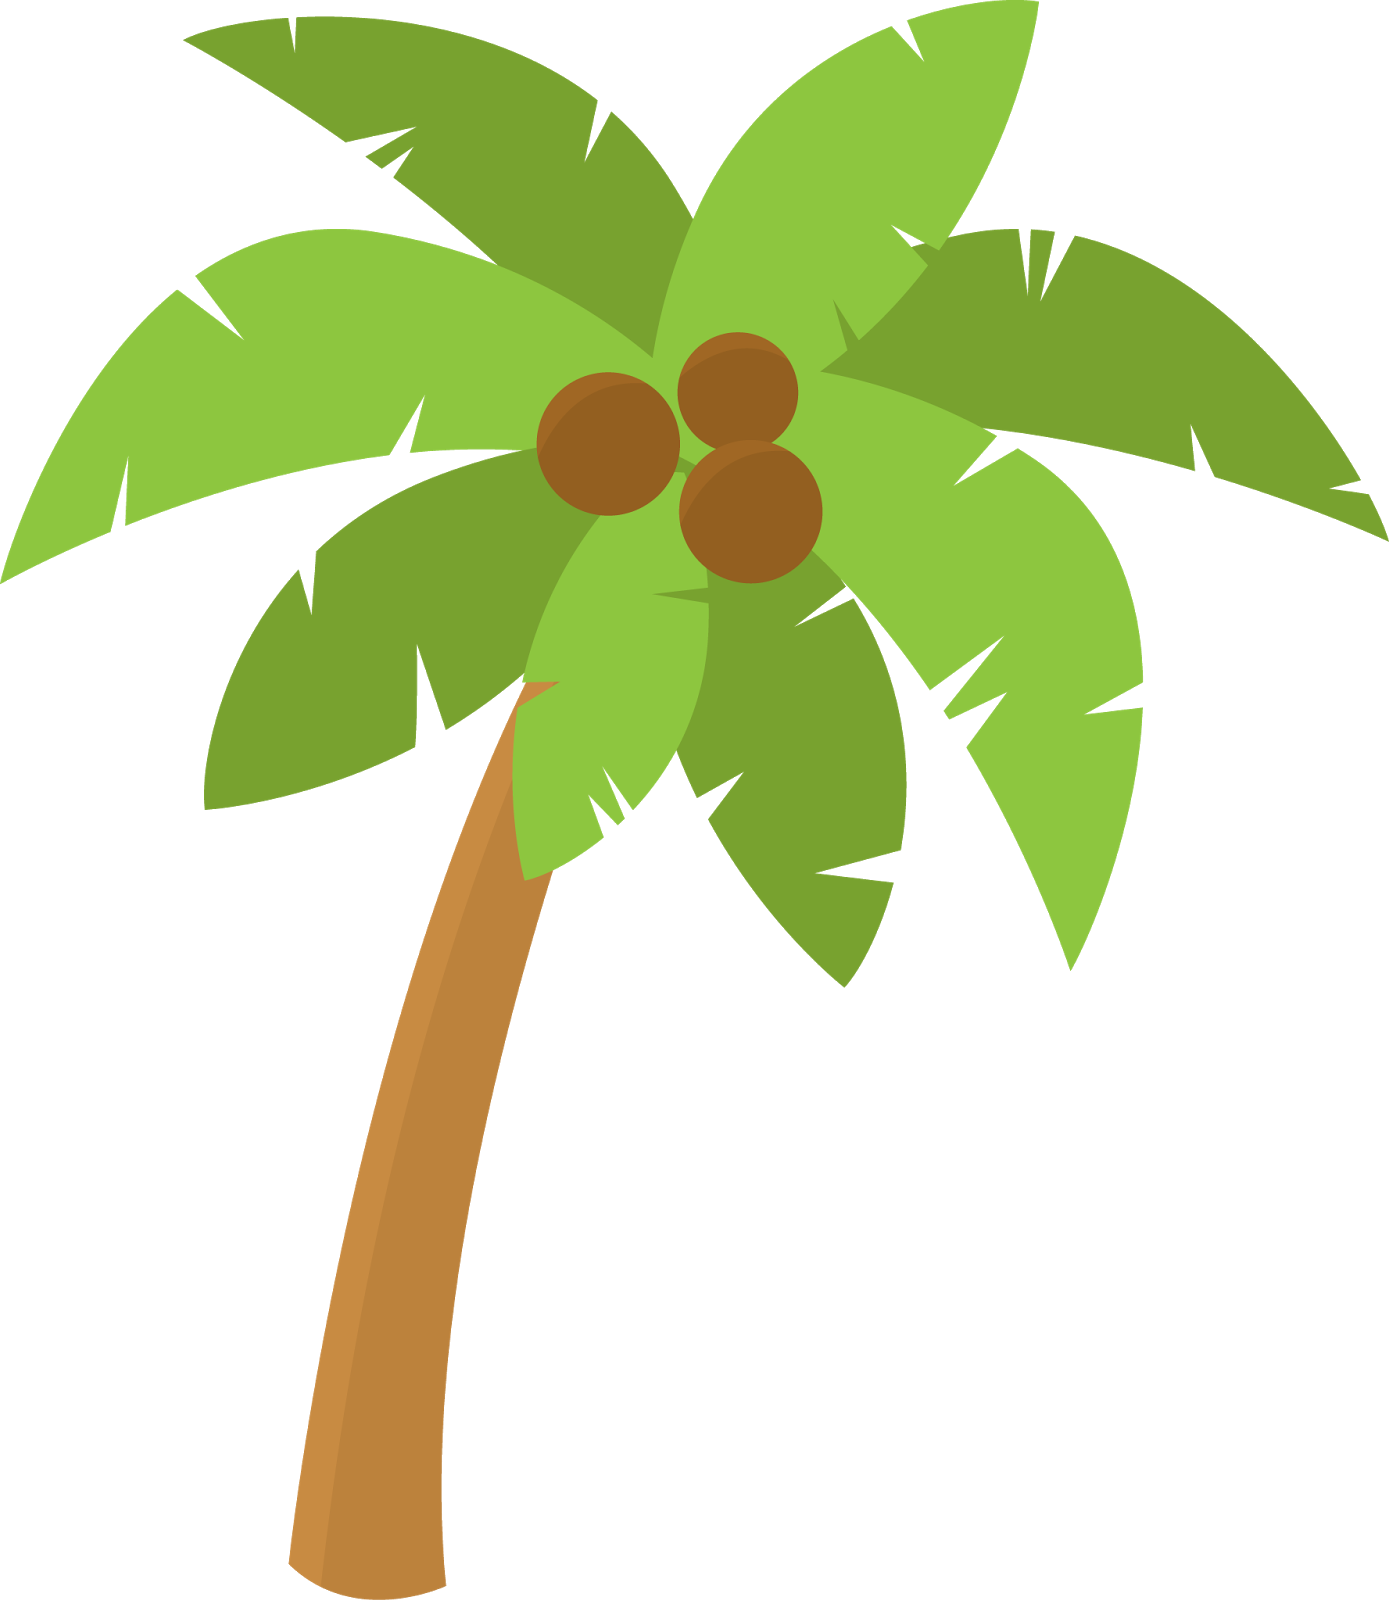 Palm tree luau. Pin by jordan leider